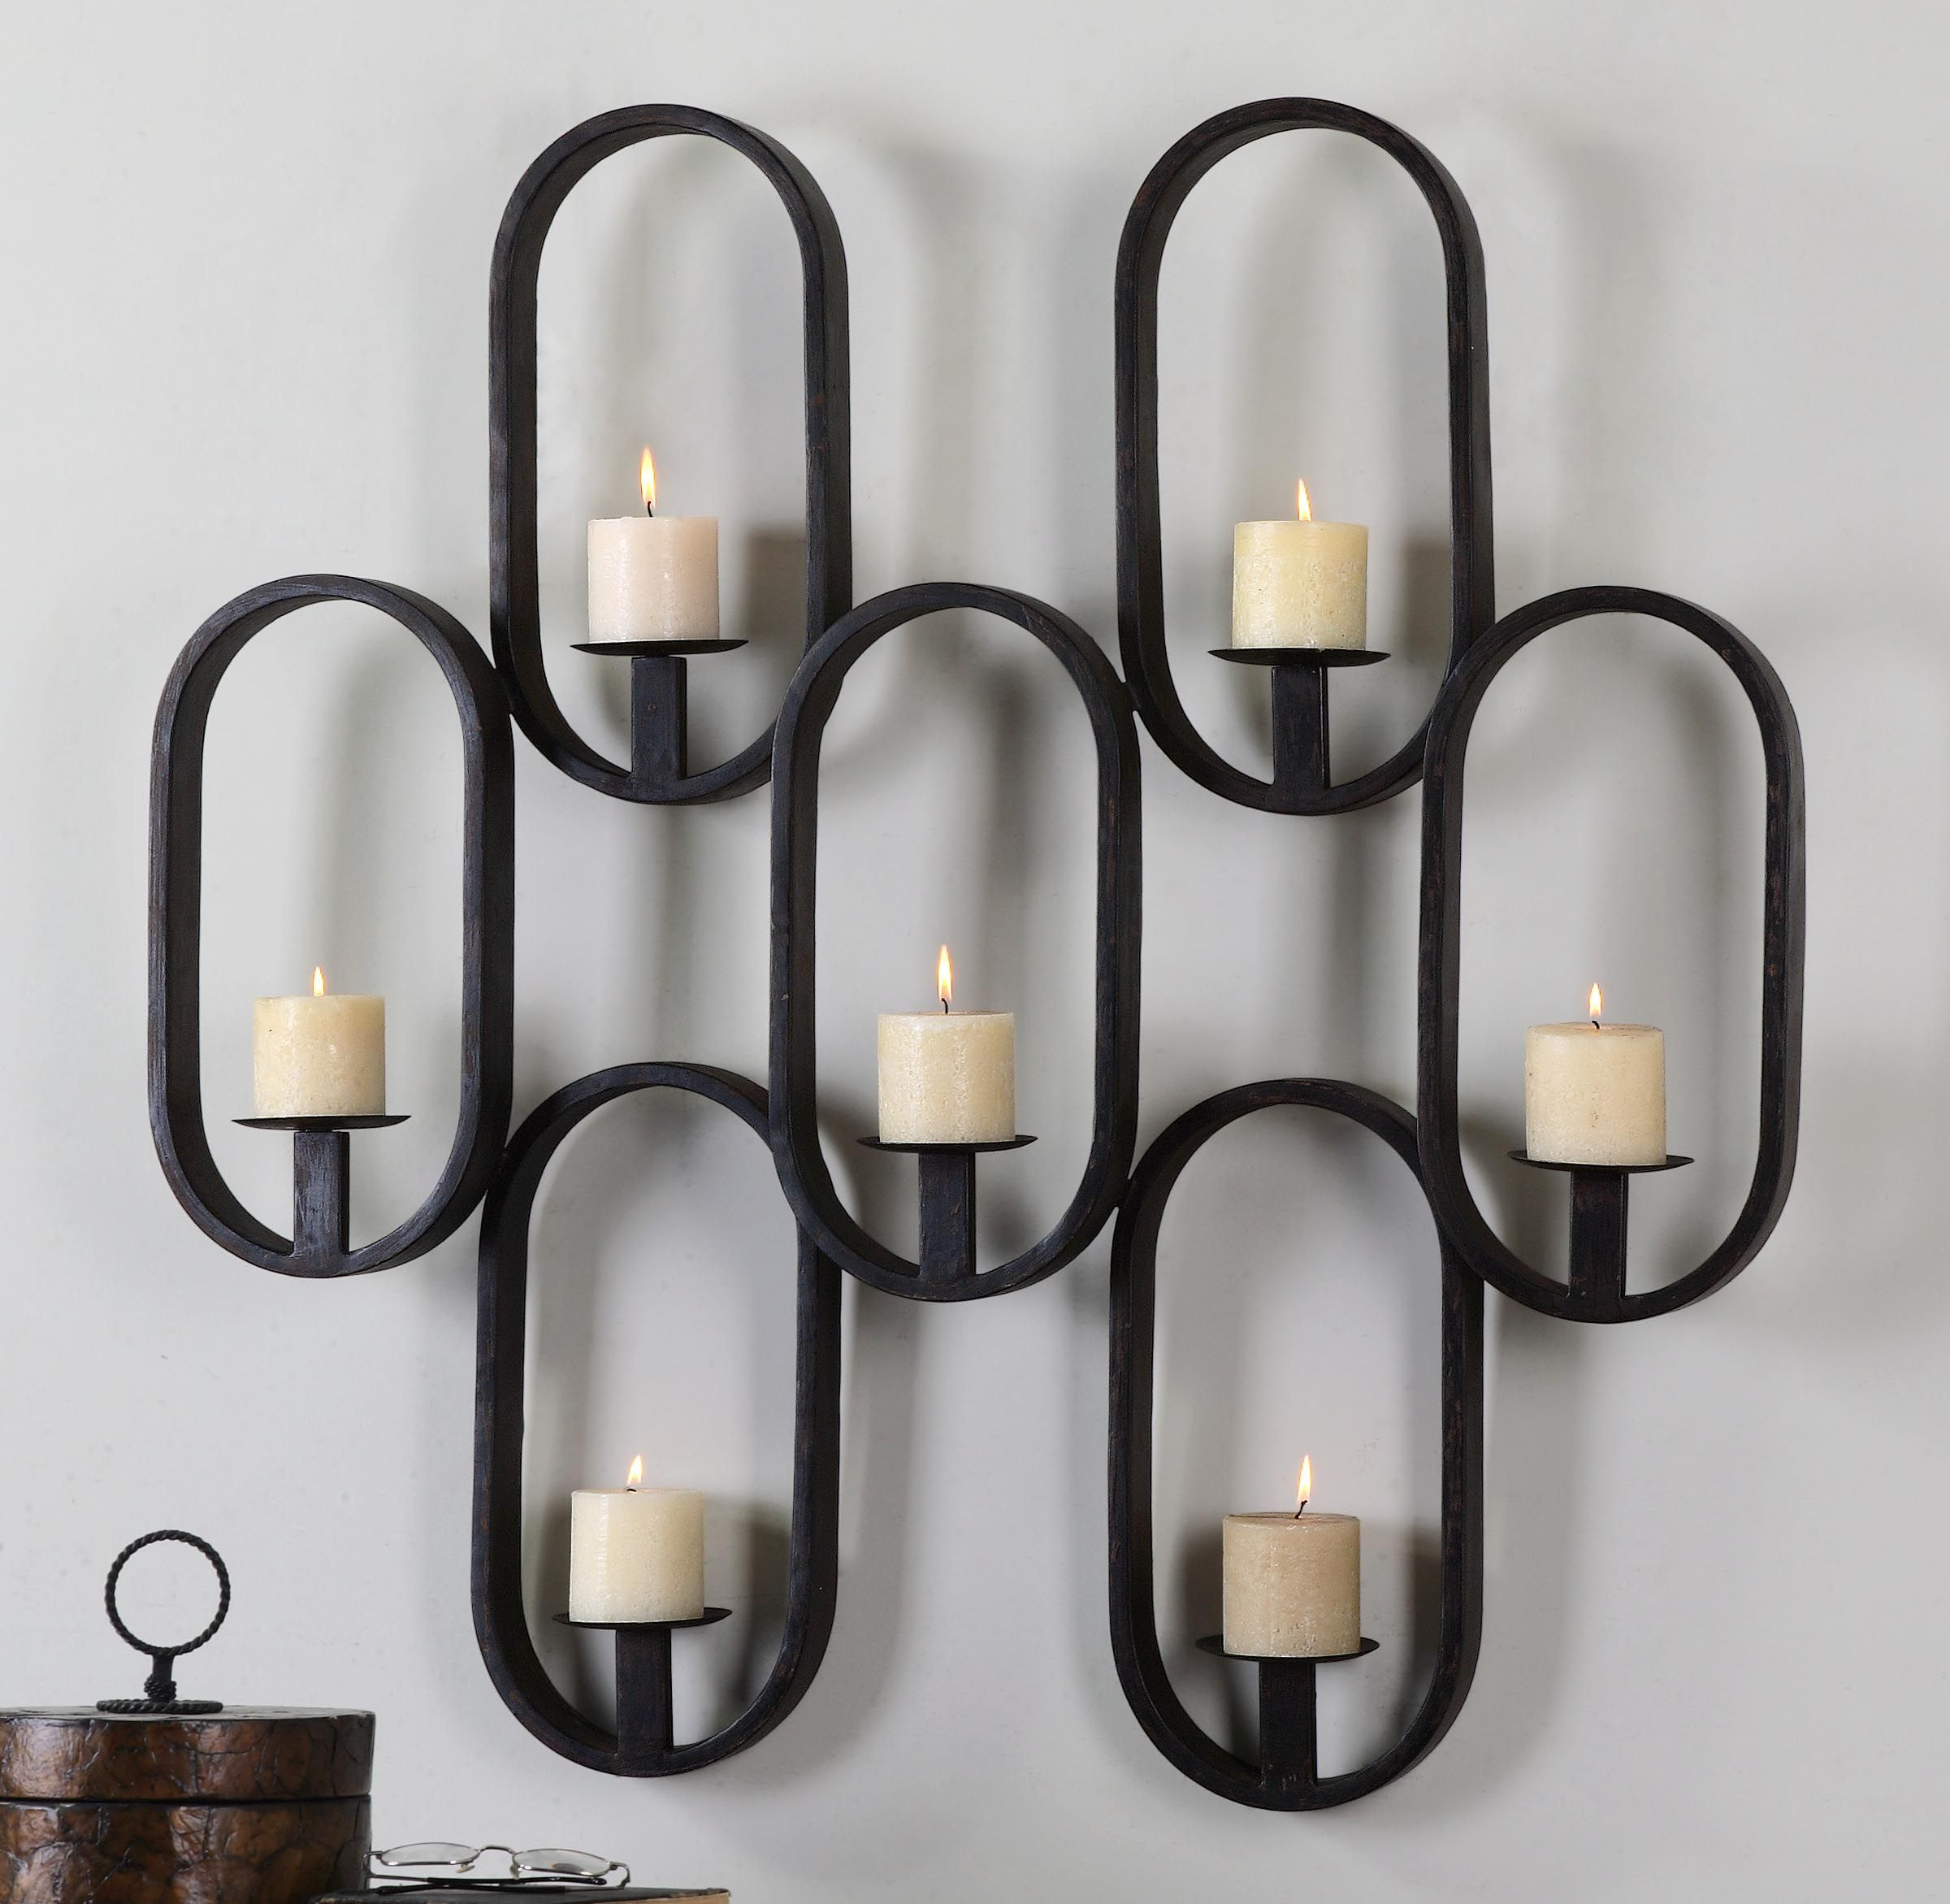 modern sconces wall furniture uttermost hudsons proportions pertaining clocks x to nico ronan clock sconce desk